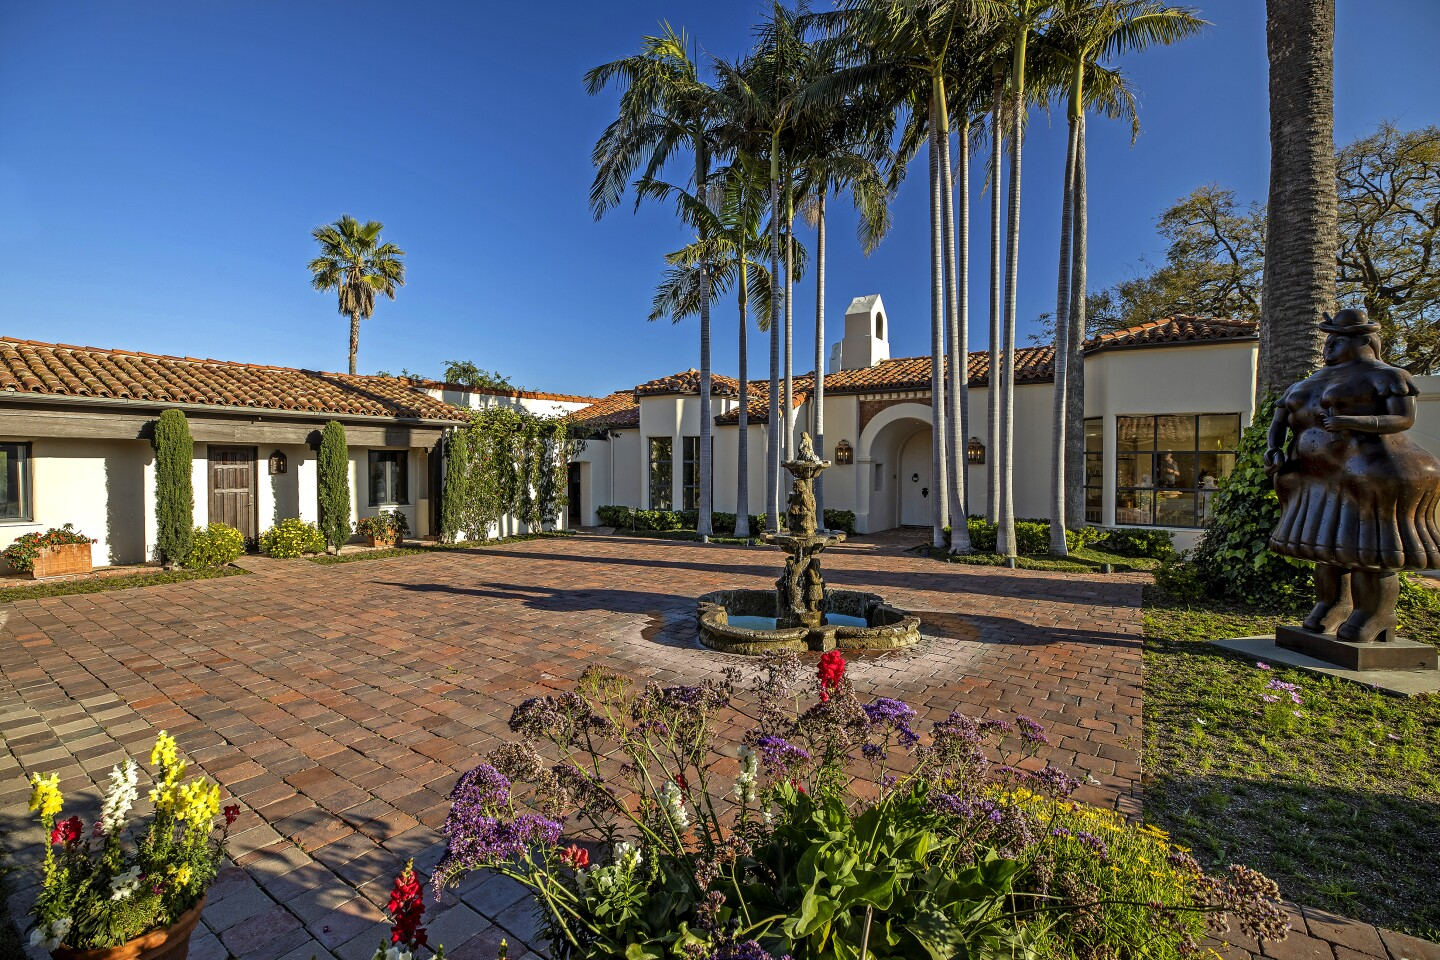 Once owned by soap opera creator Lee Phillip Bell, the 2.5-acre spread centers on a Mediterranean-style mansion of about 9,100 square feet.